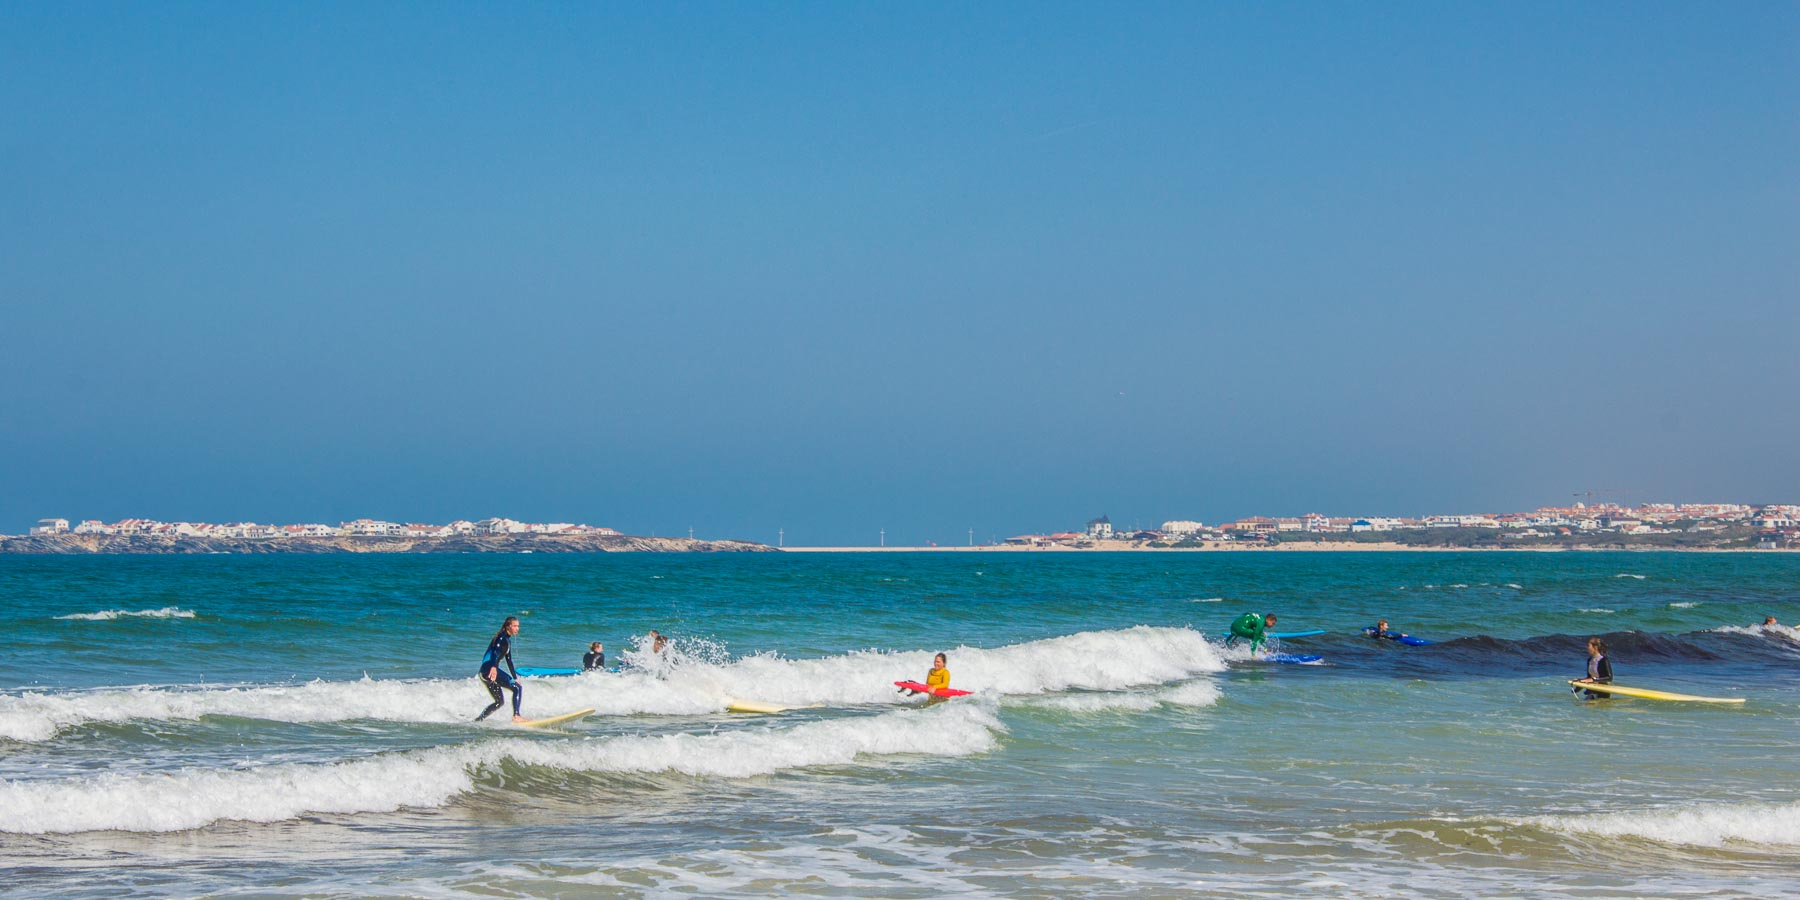 Renting a car in Portugal means you can get off the highway to watch people learning to surf.